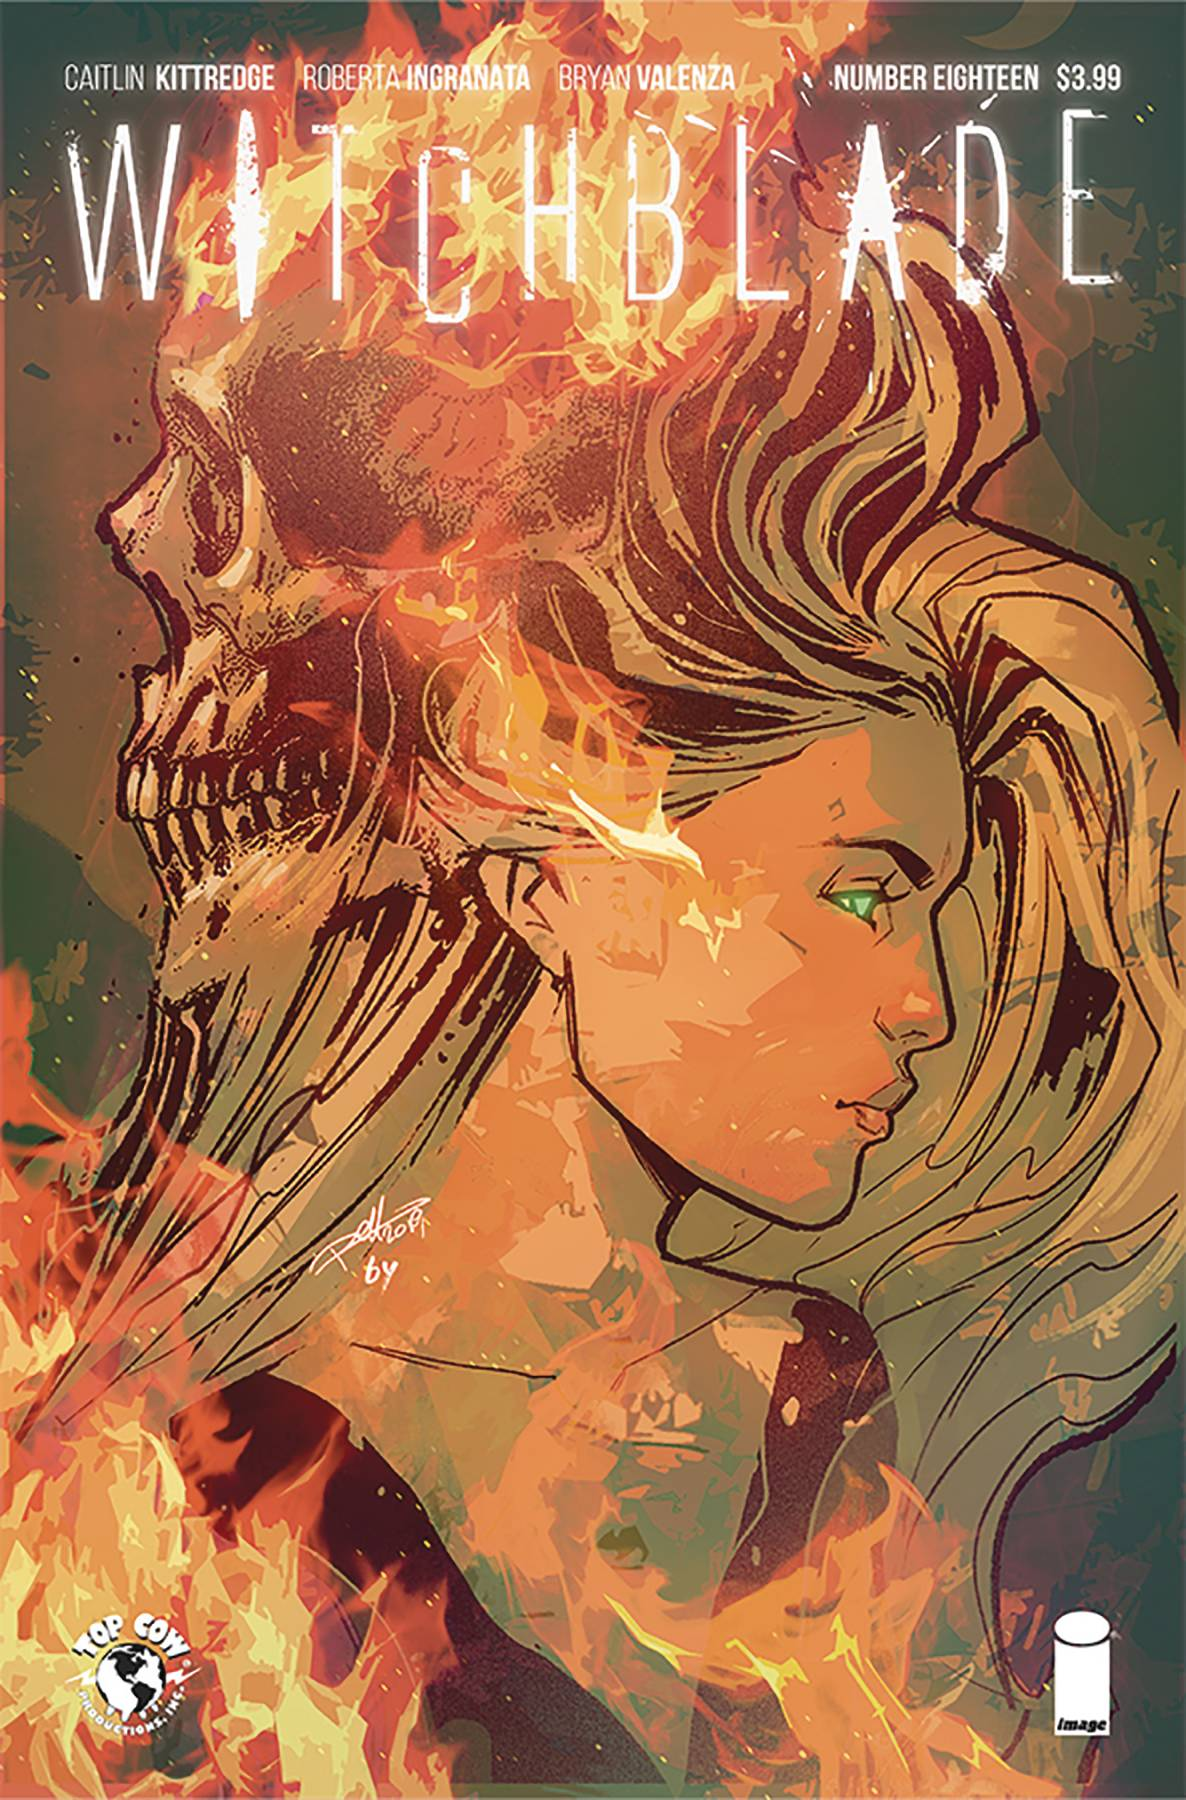 Witchblade #18 (2020)